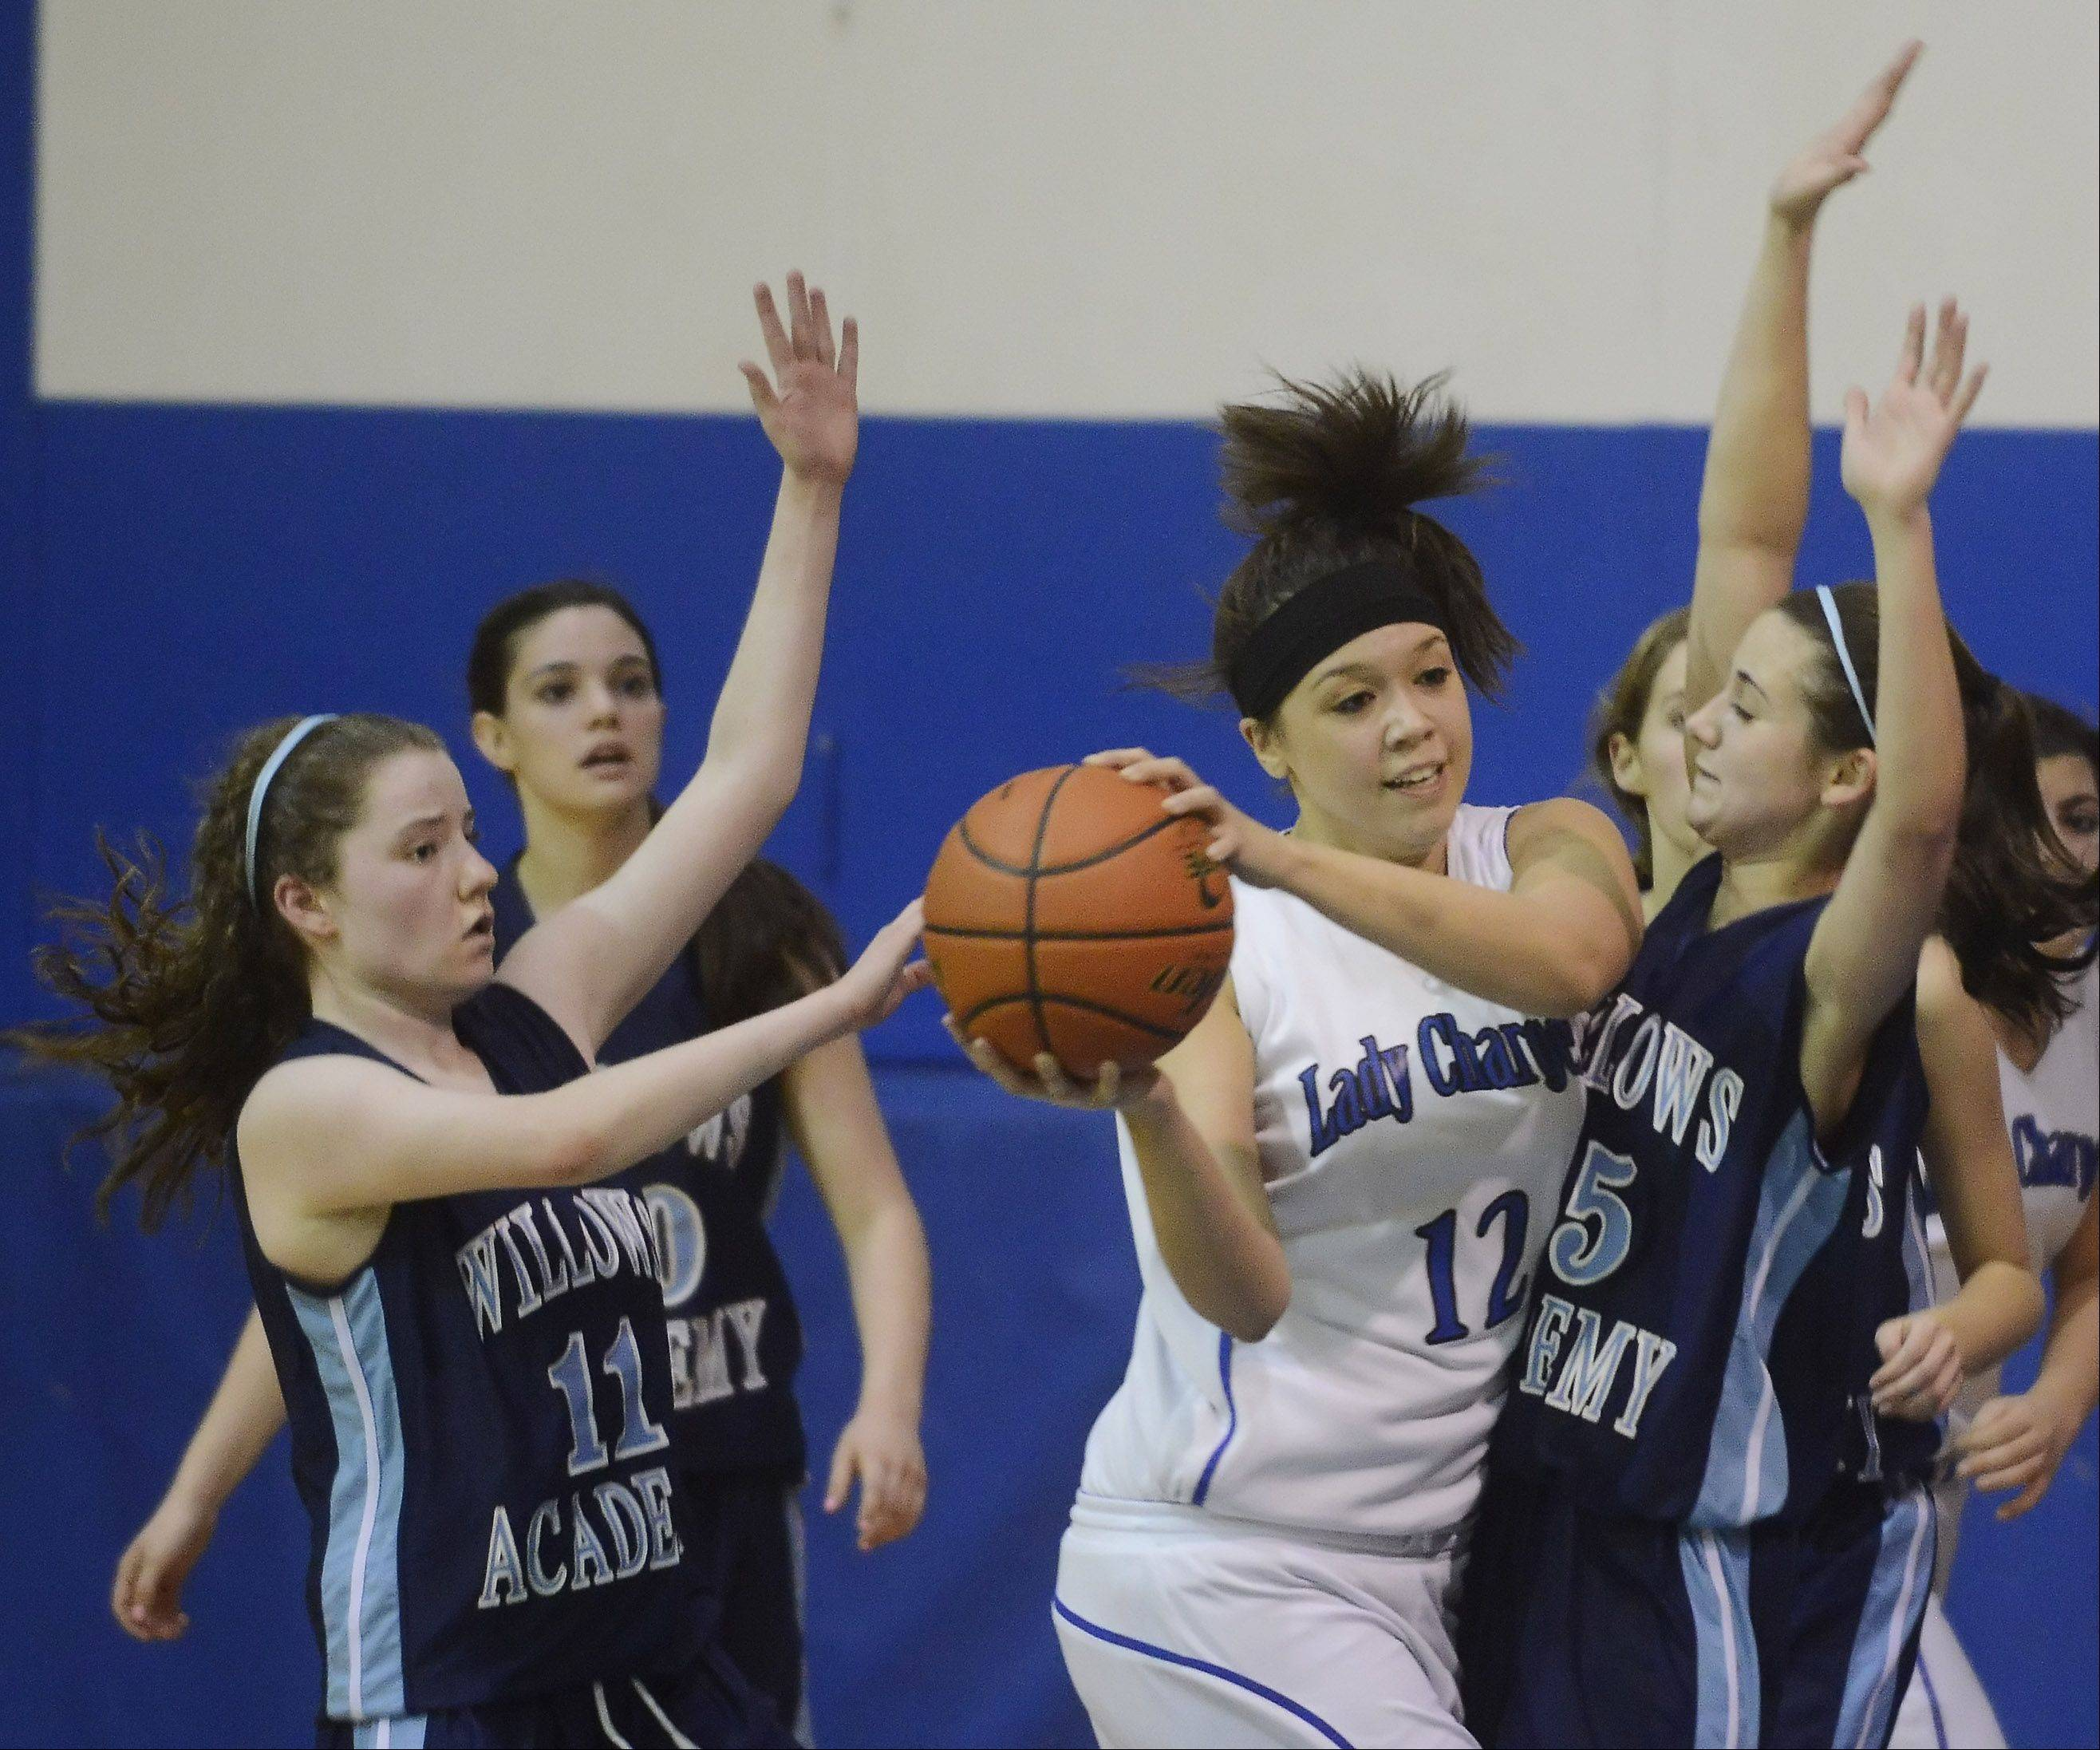 Images: Christian Liberty vs. Willows Academy, girls basketball